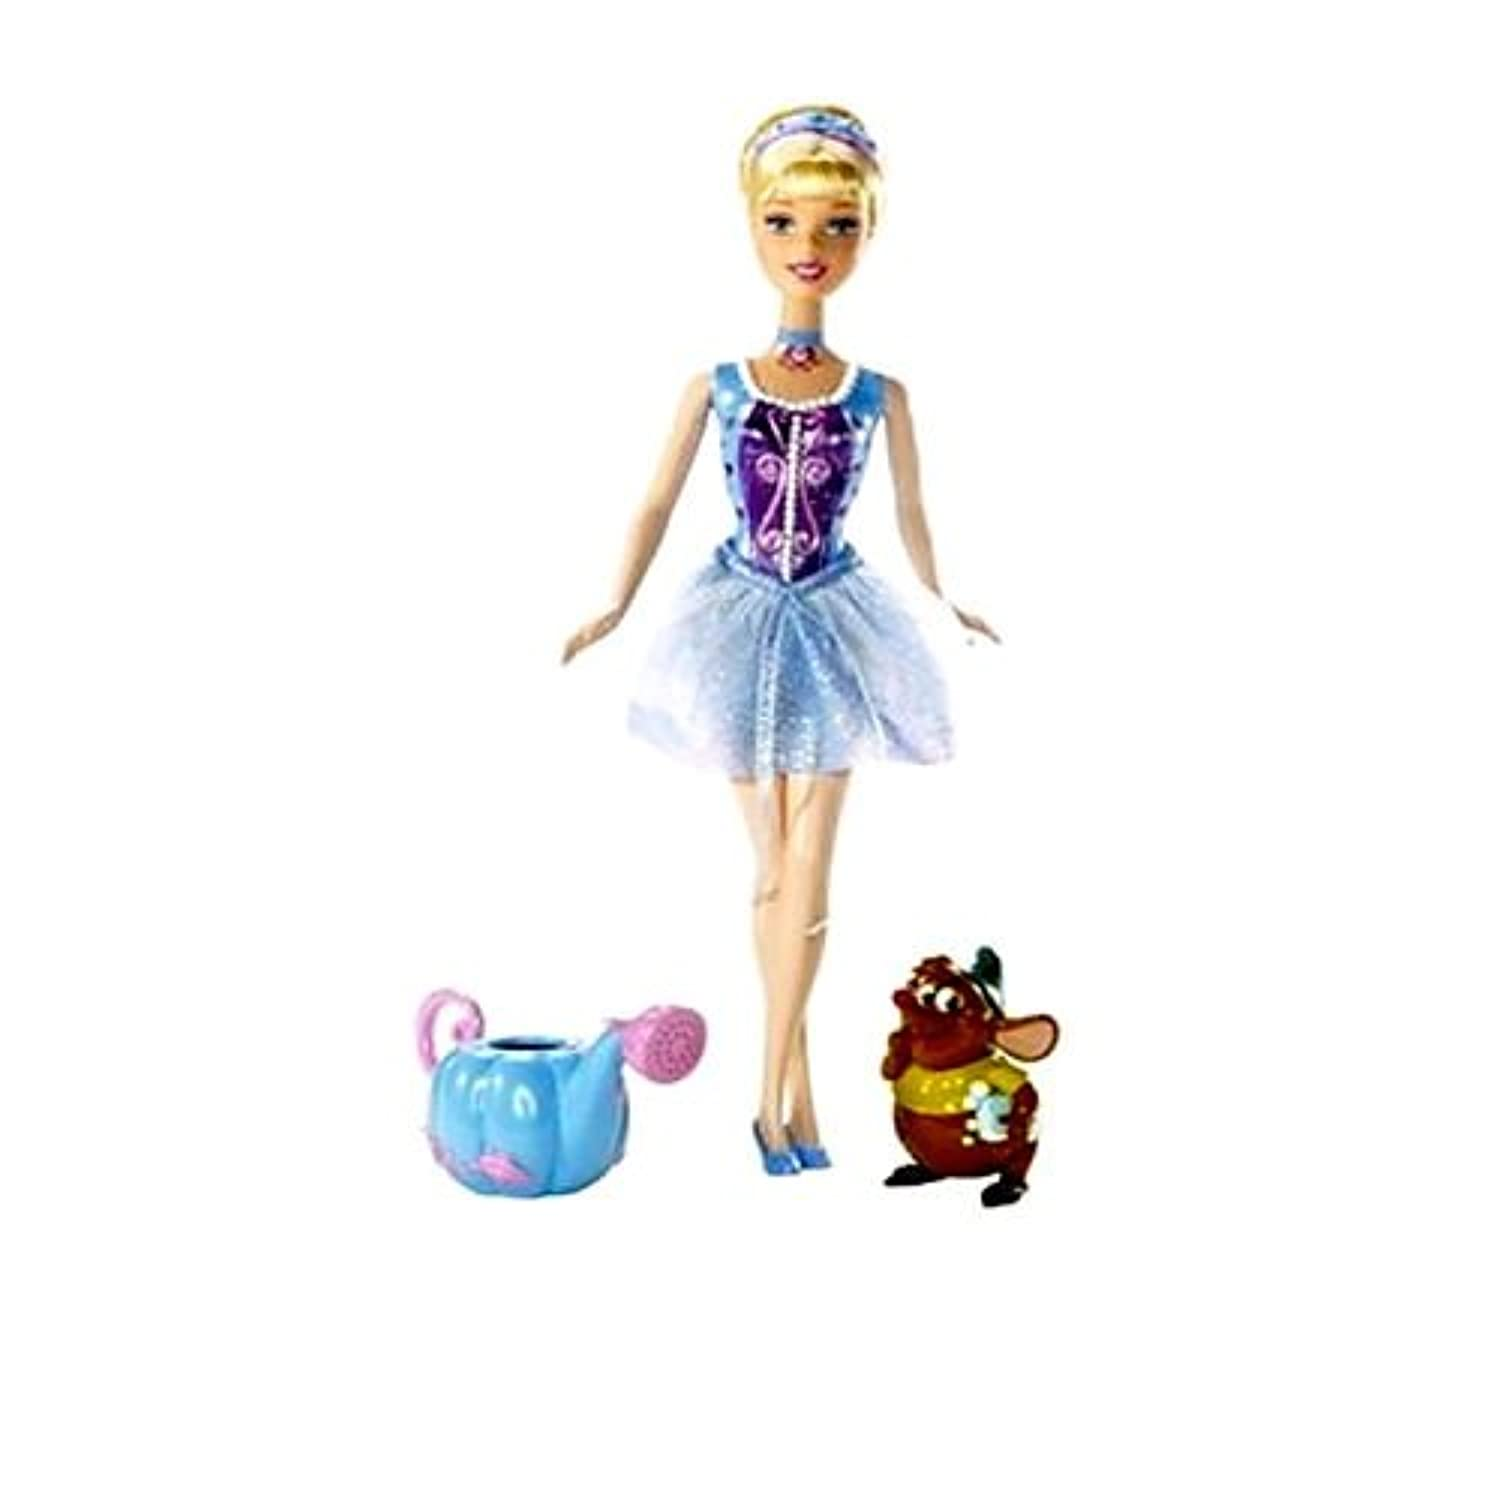 Disney Princess Bath Beauty Cinderella Doll by Mattel